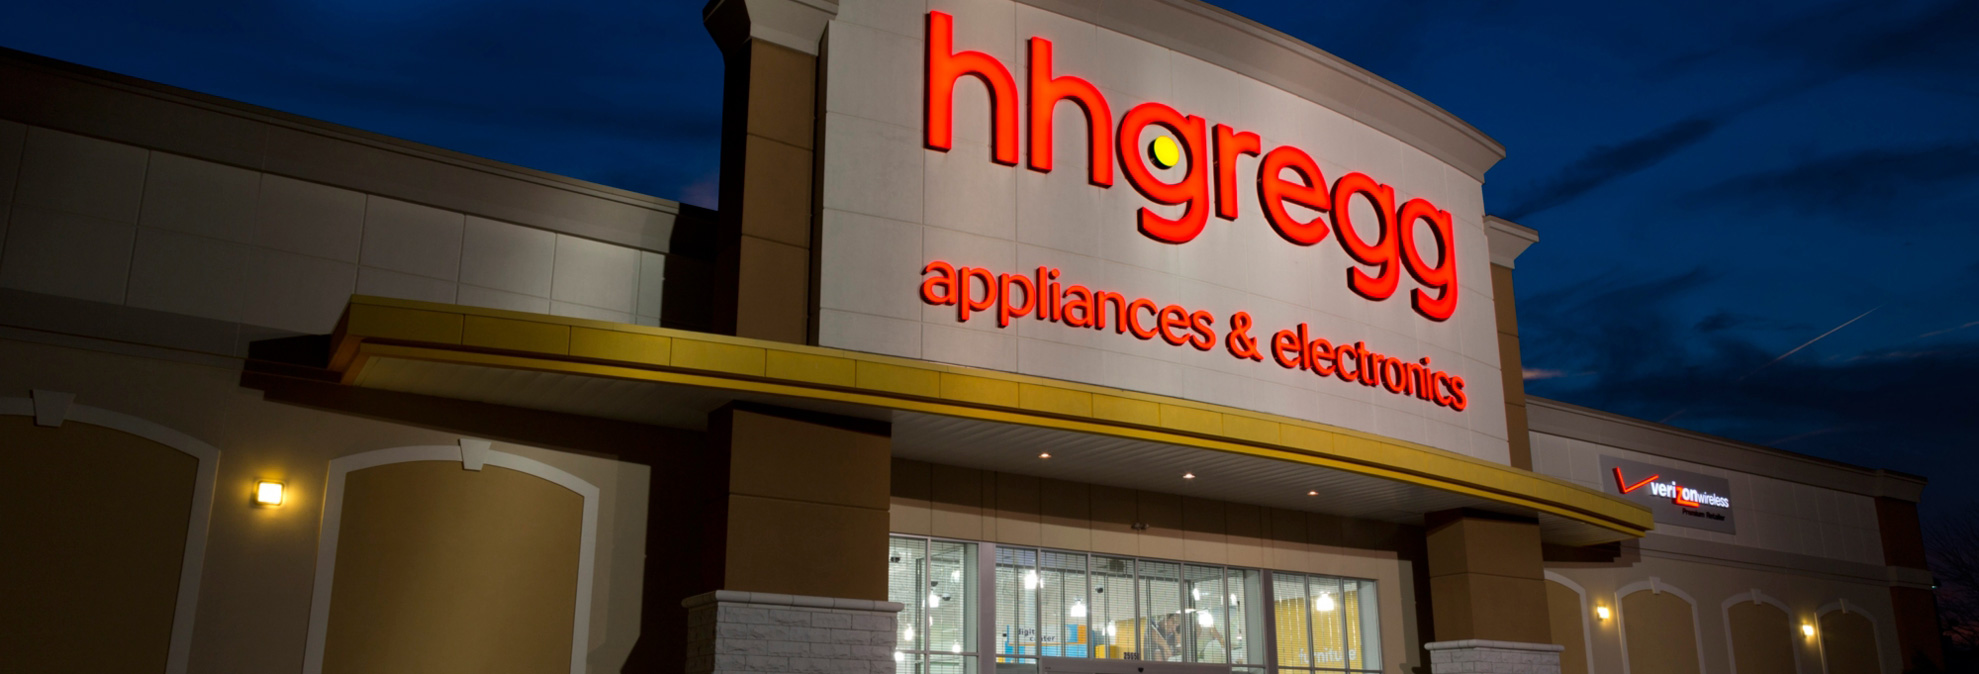 Hhgregg Black Friday Sales Consumer Reports